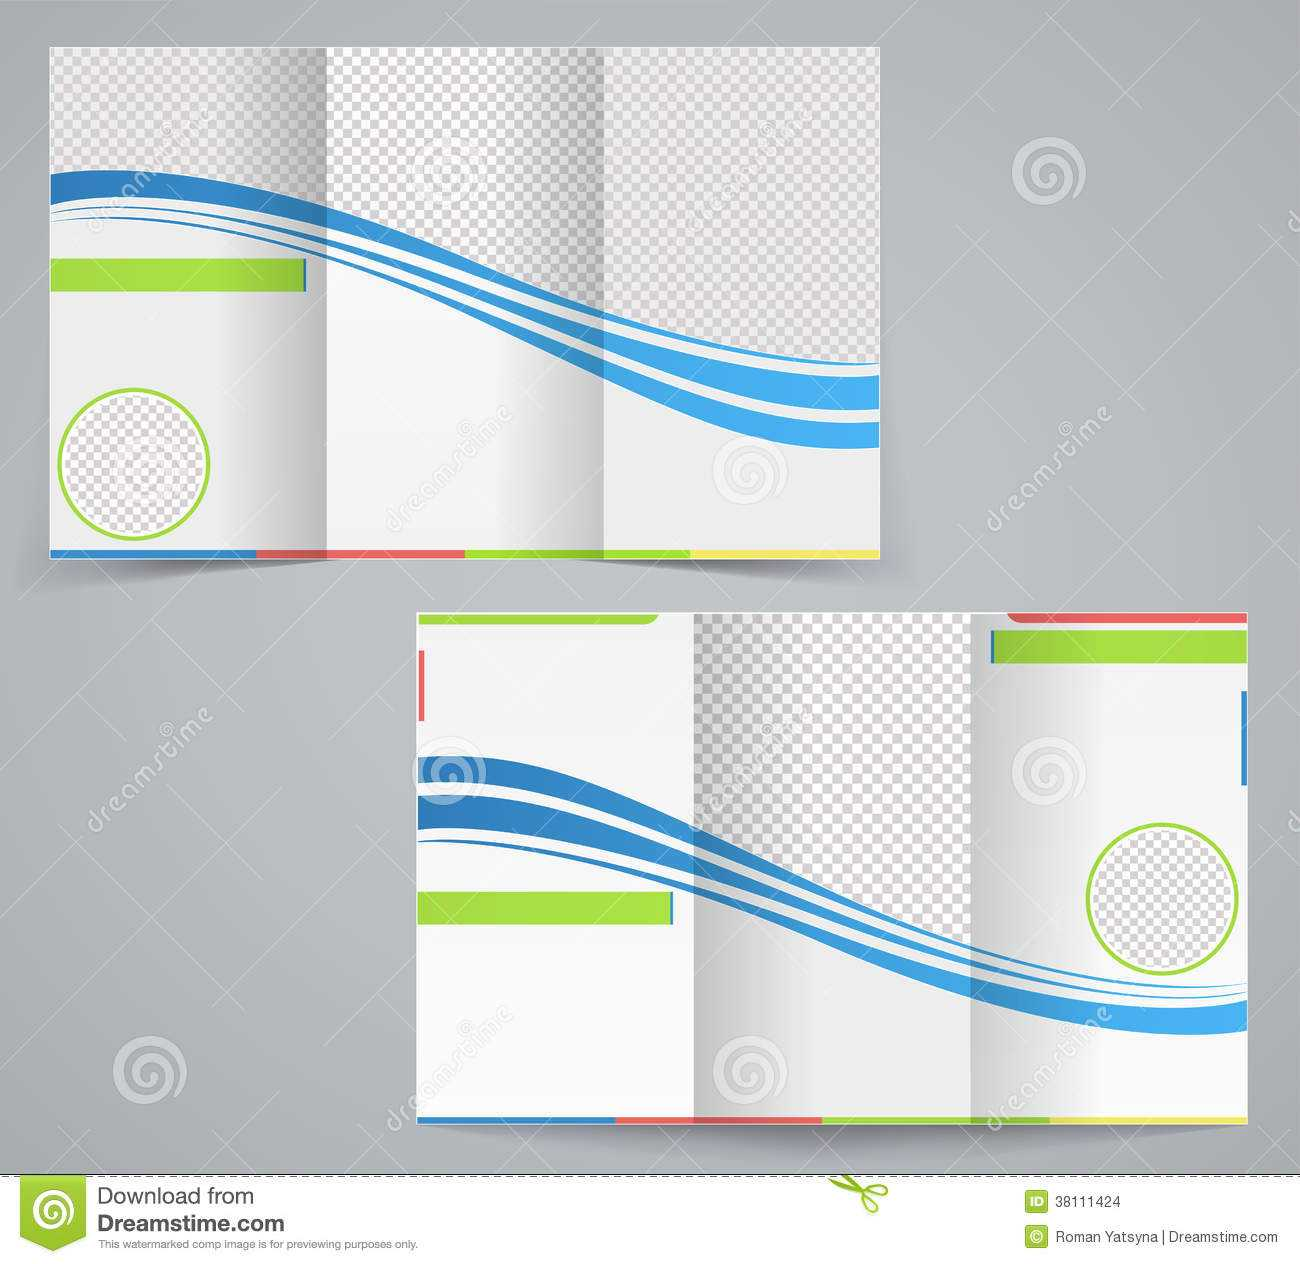 018 Real Estate Trifold Template Ideas Tri Fold Astounding Intended For Free Tri Fold Brochure Templates Microsoft Word